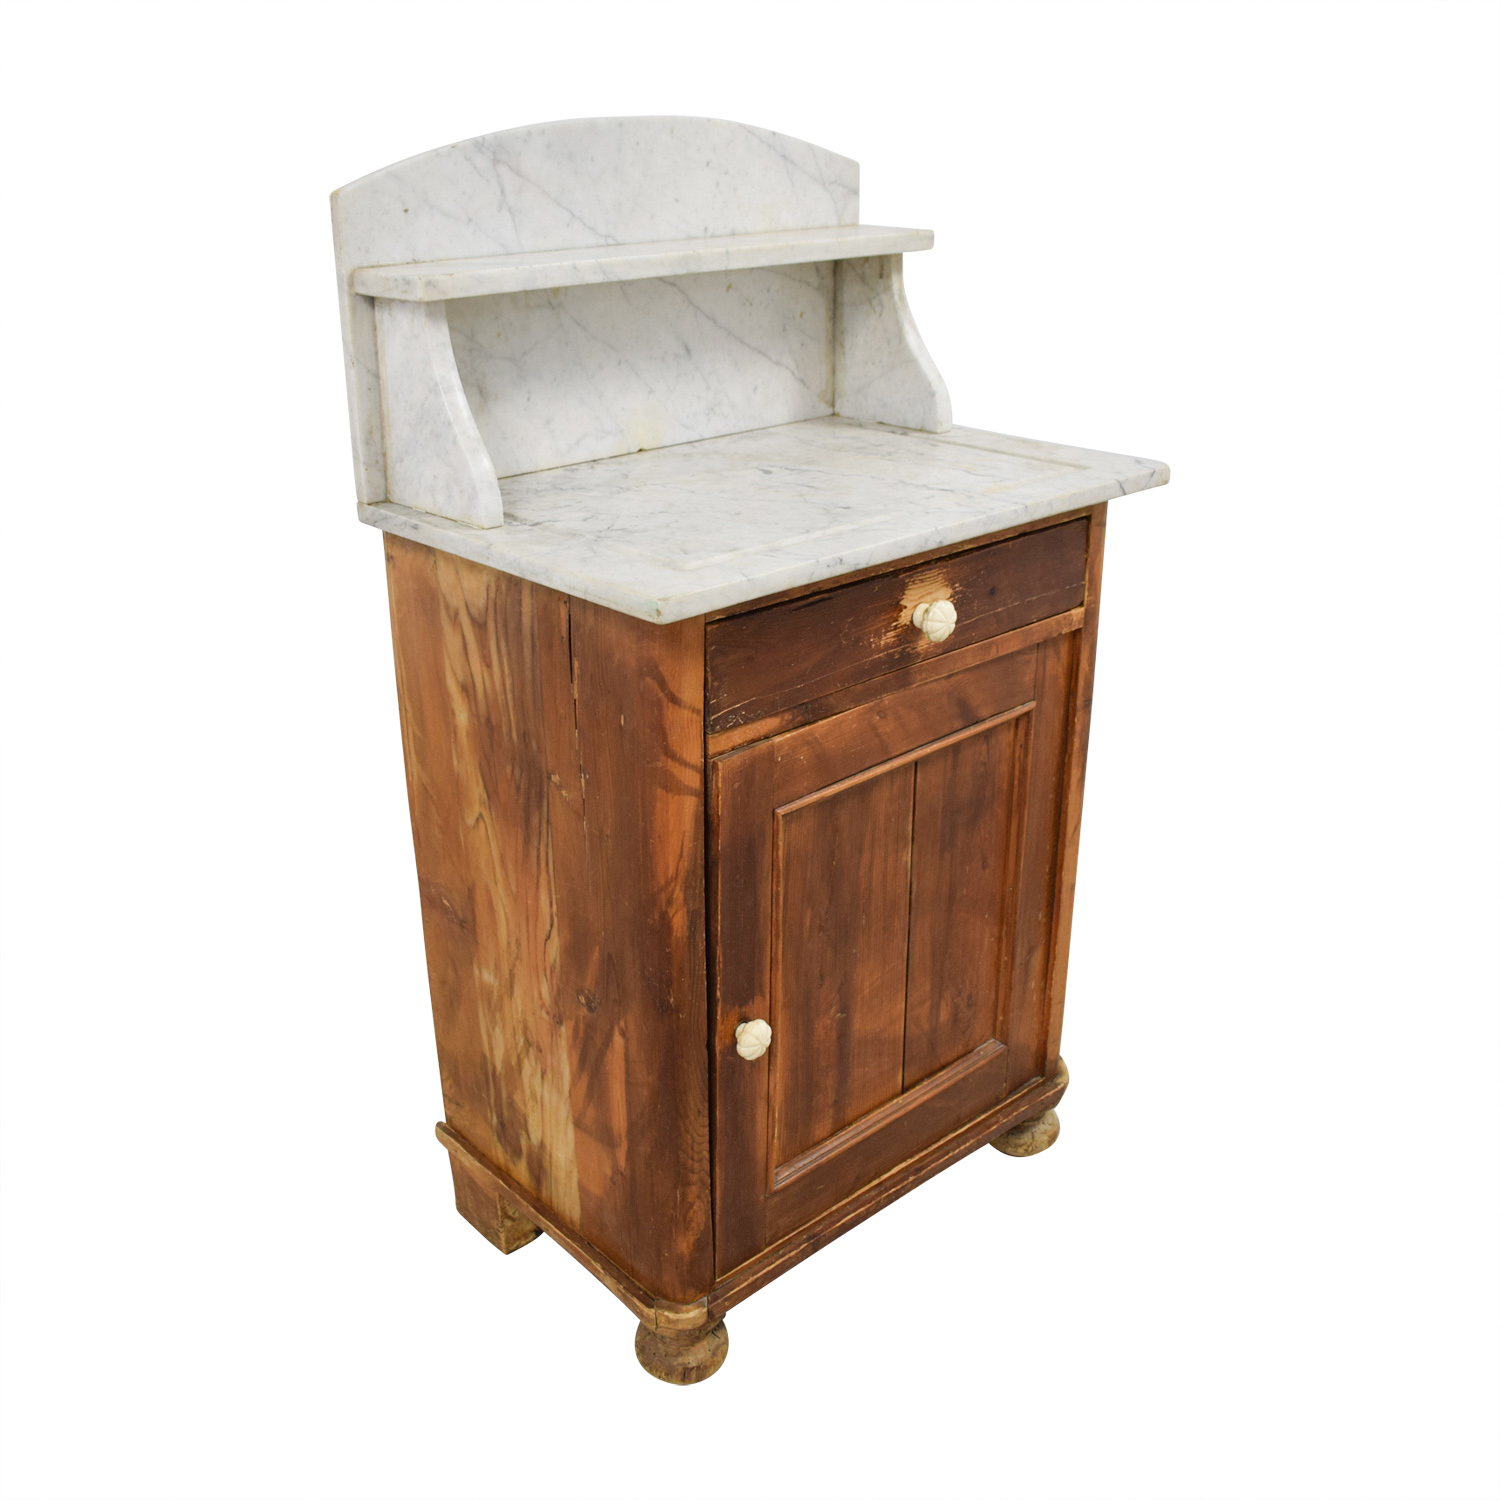 Evergreen Evergreen Rustic Marble Topped Storage Cabinet used